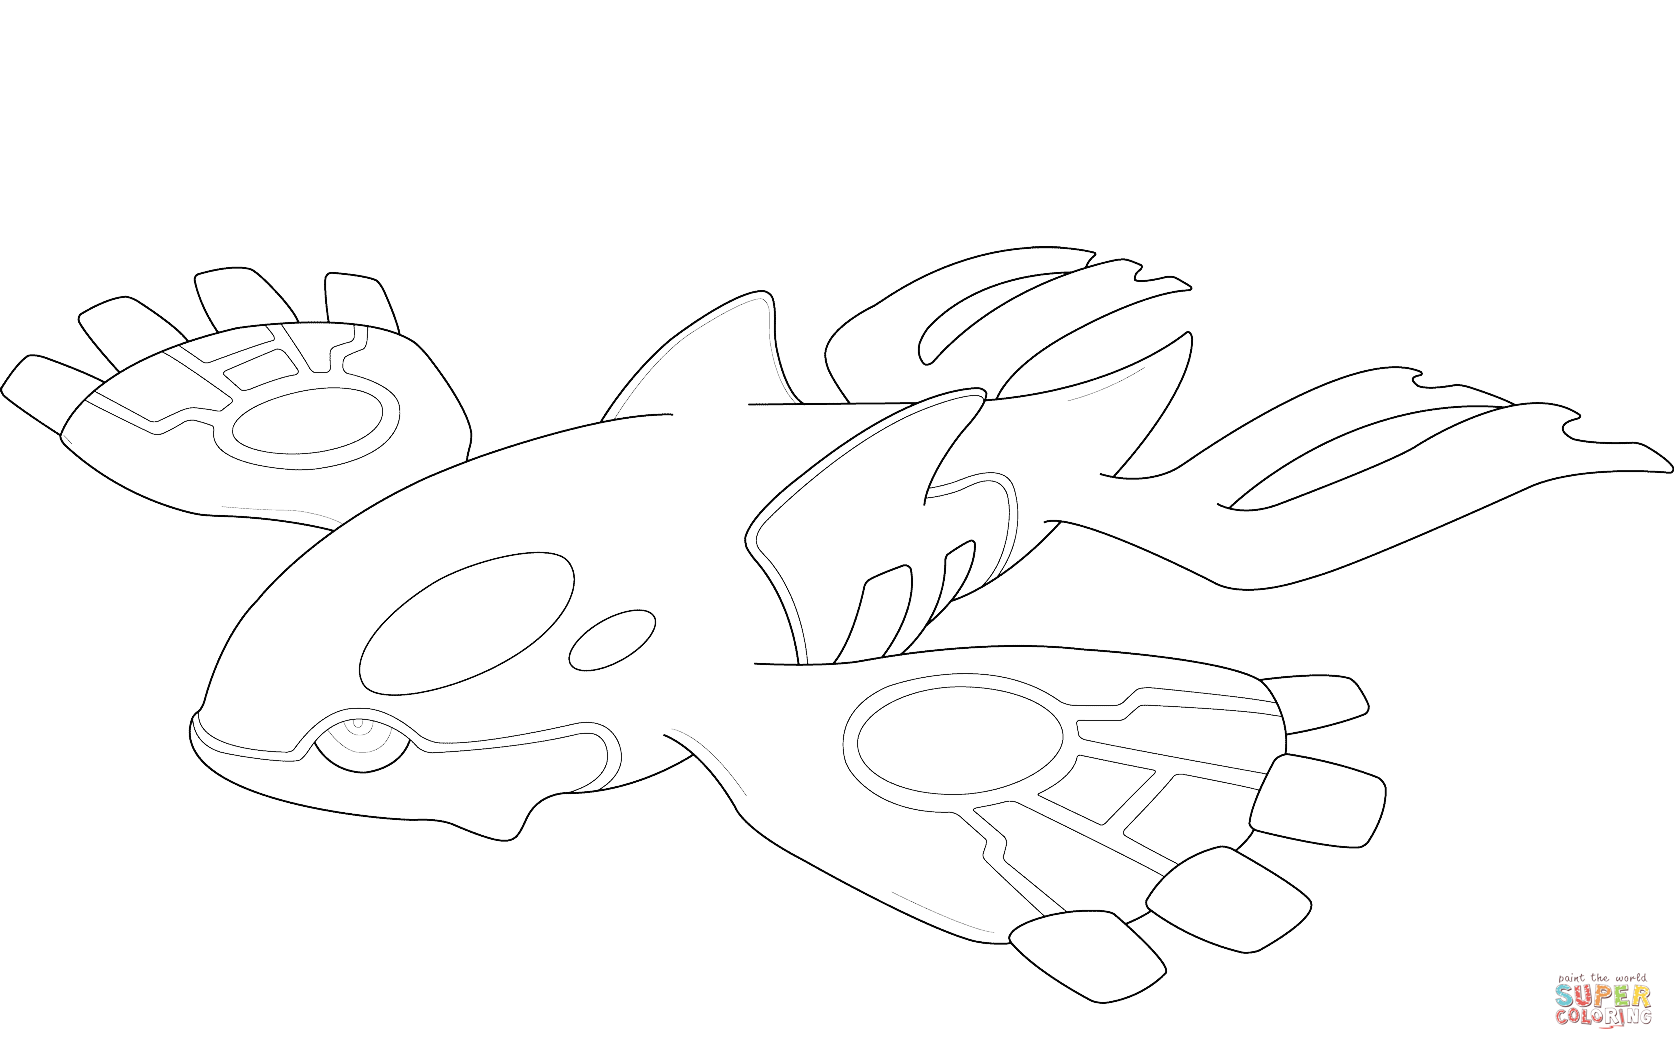 Click the kyogre pokemon coloring pages to view printable version or color it online compatible with ipad and android tablets